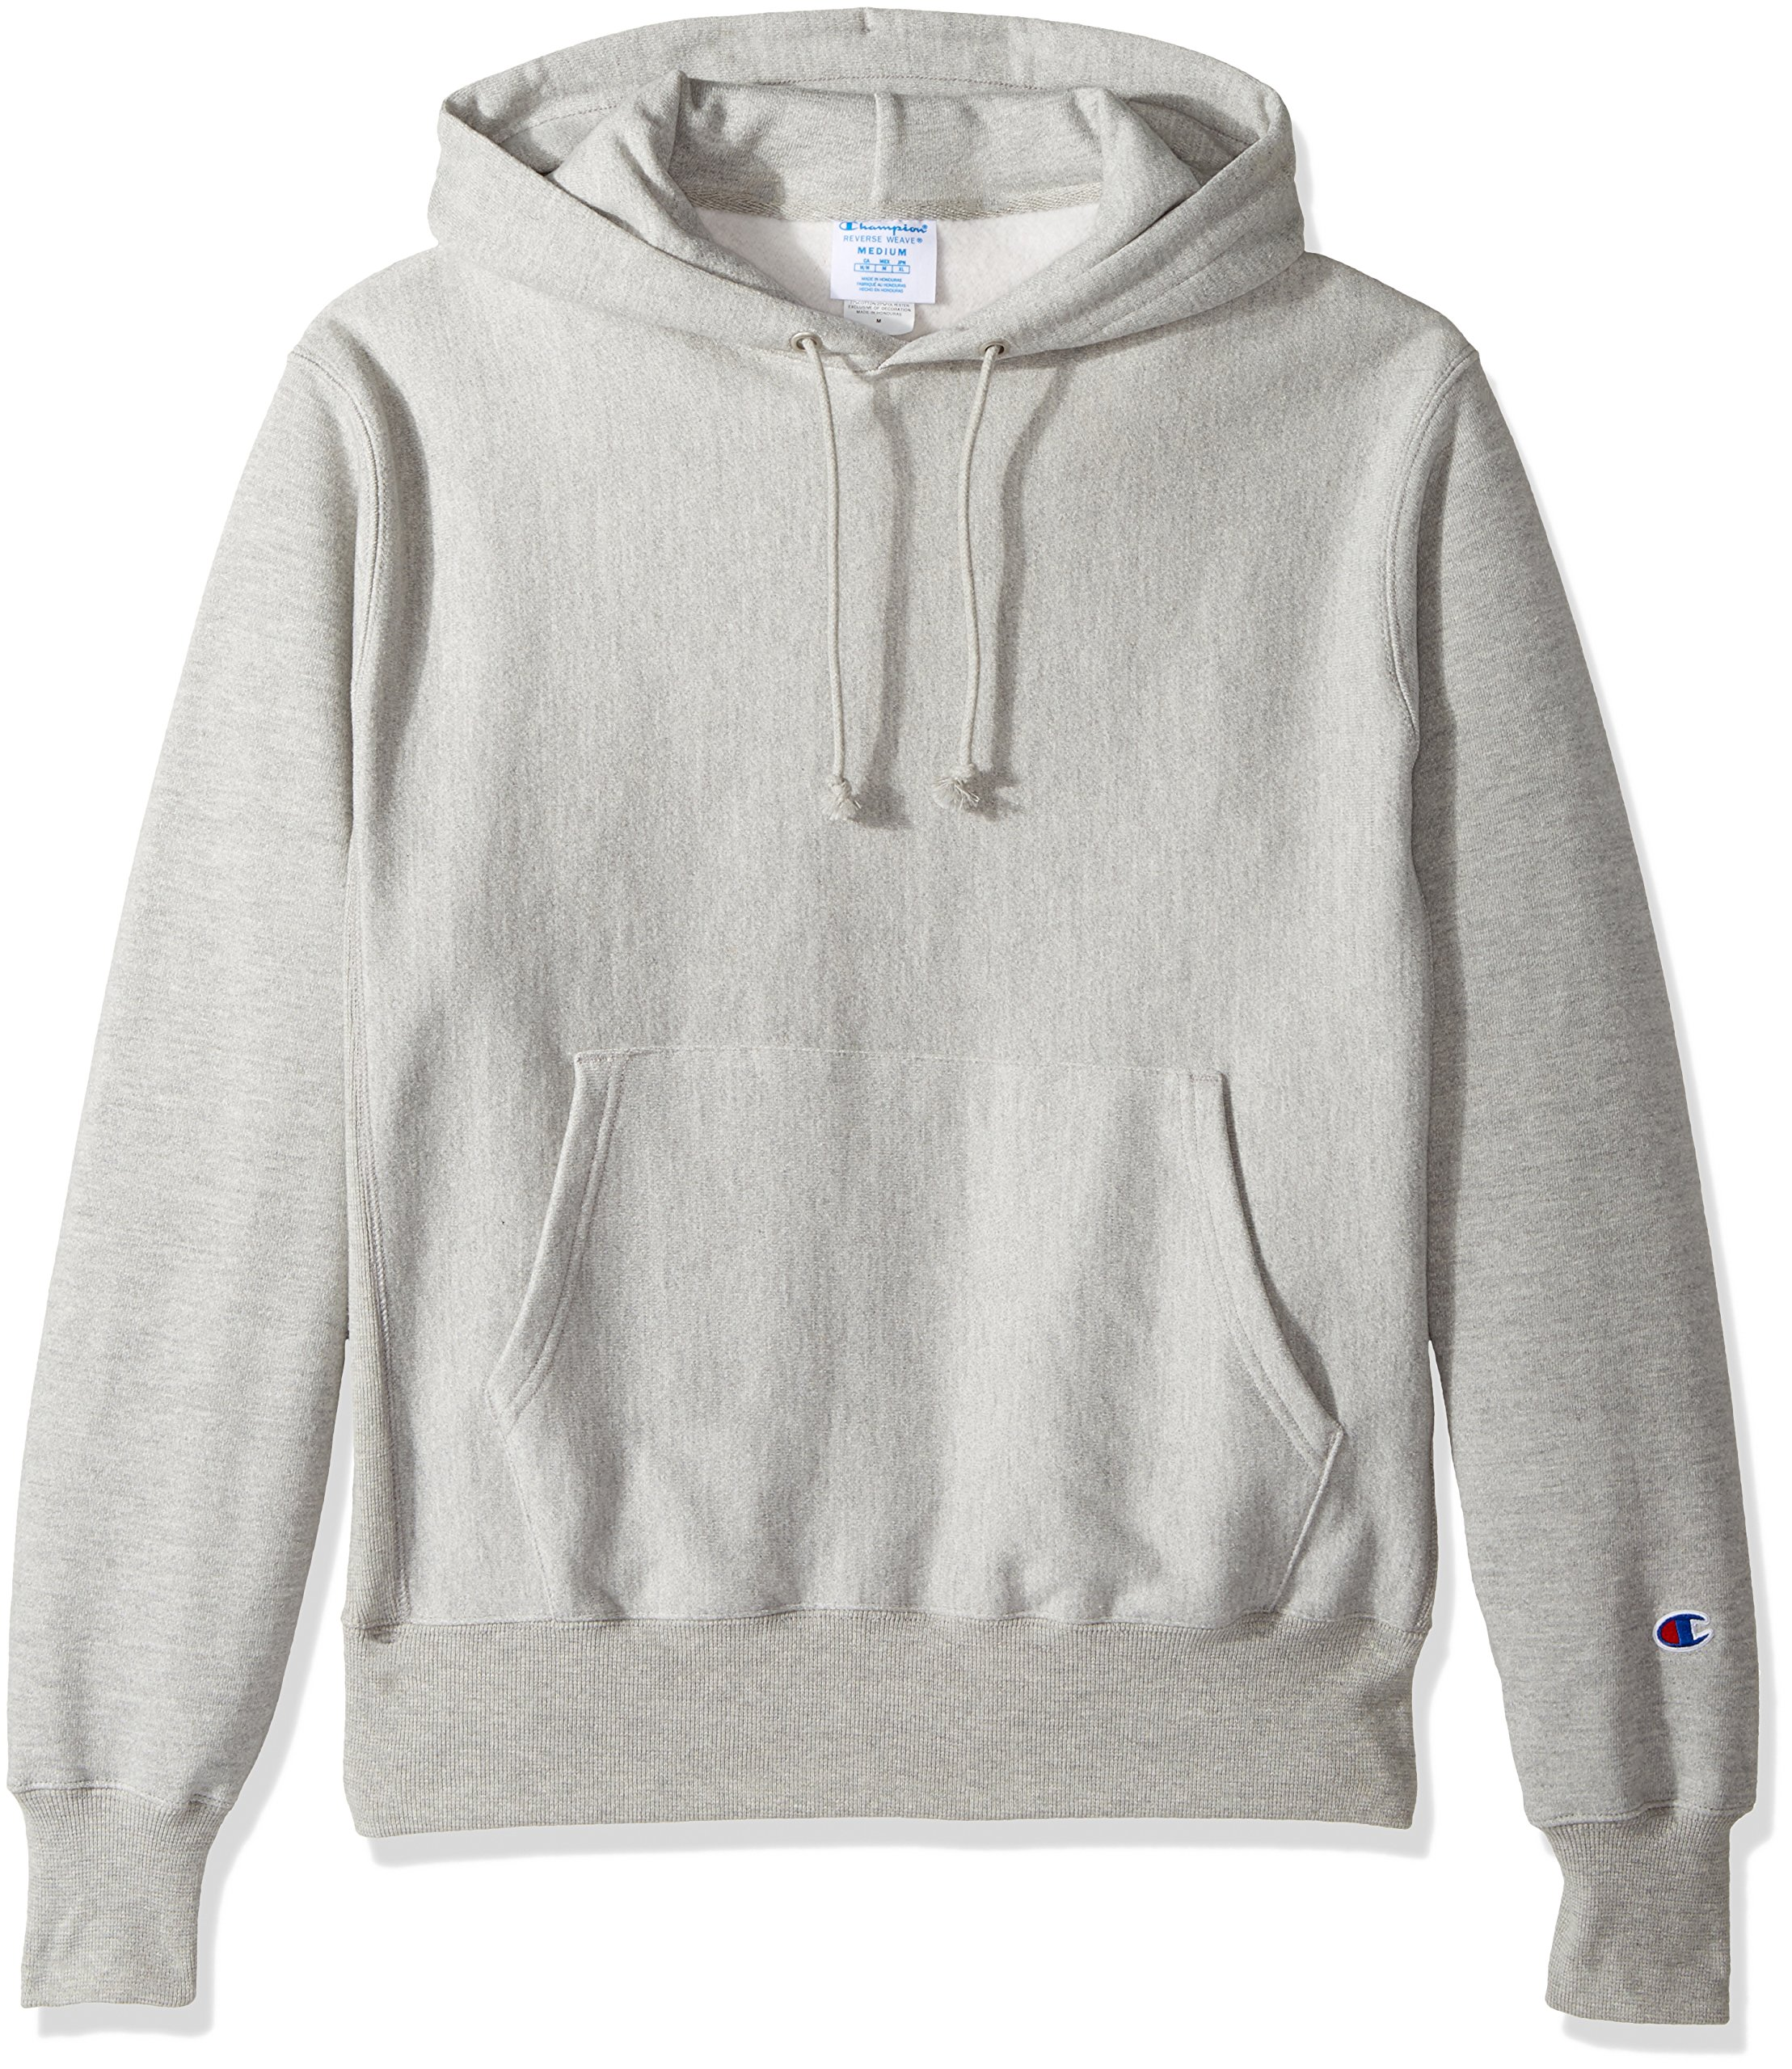 Champion LIFE Men's Reverse Weave Pullover Hoodie, Oxford Gray, M by Champion LIFE